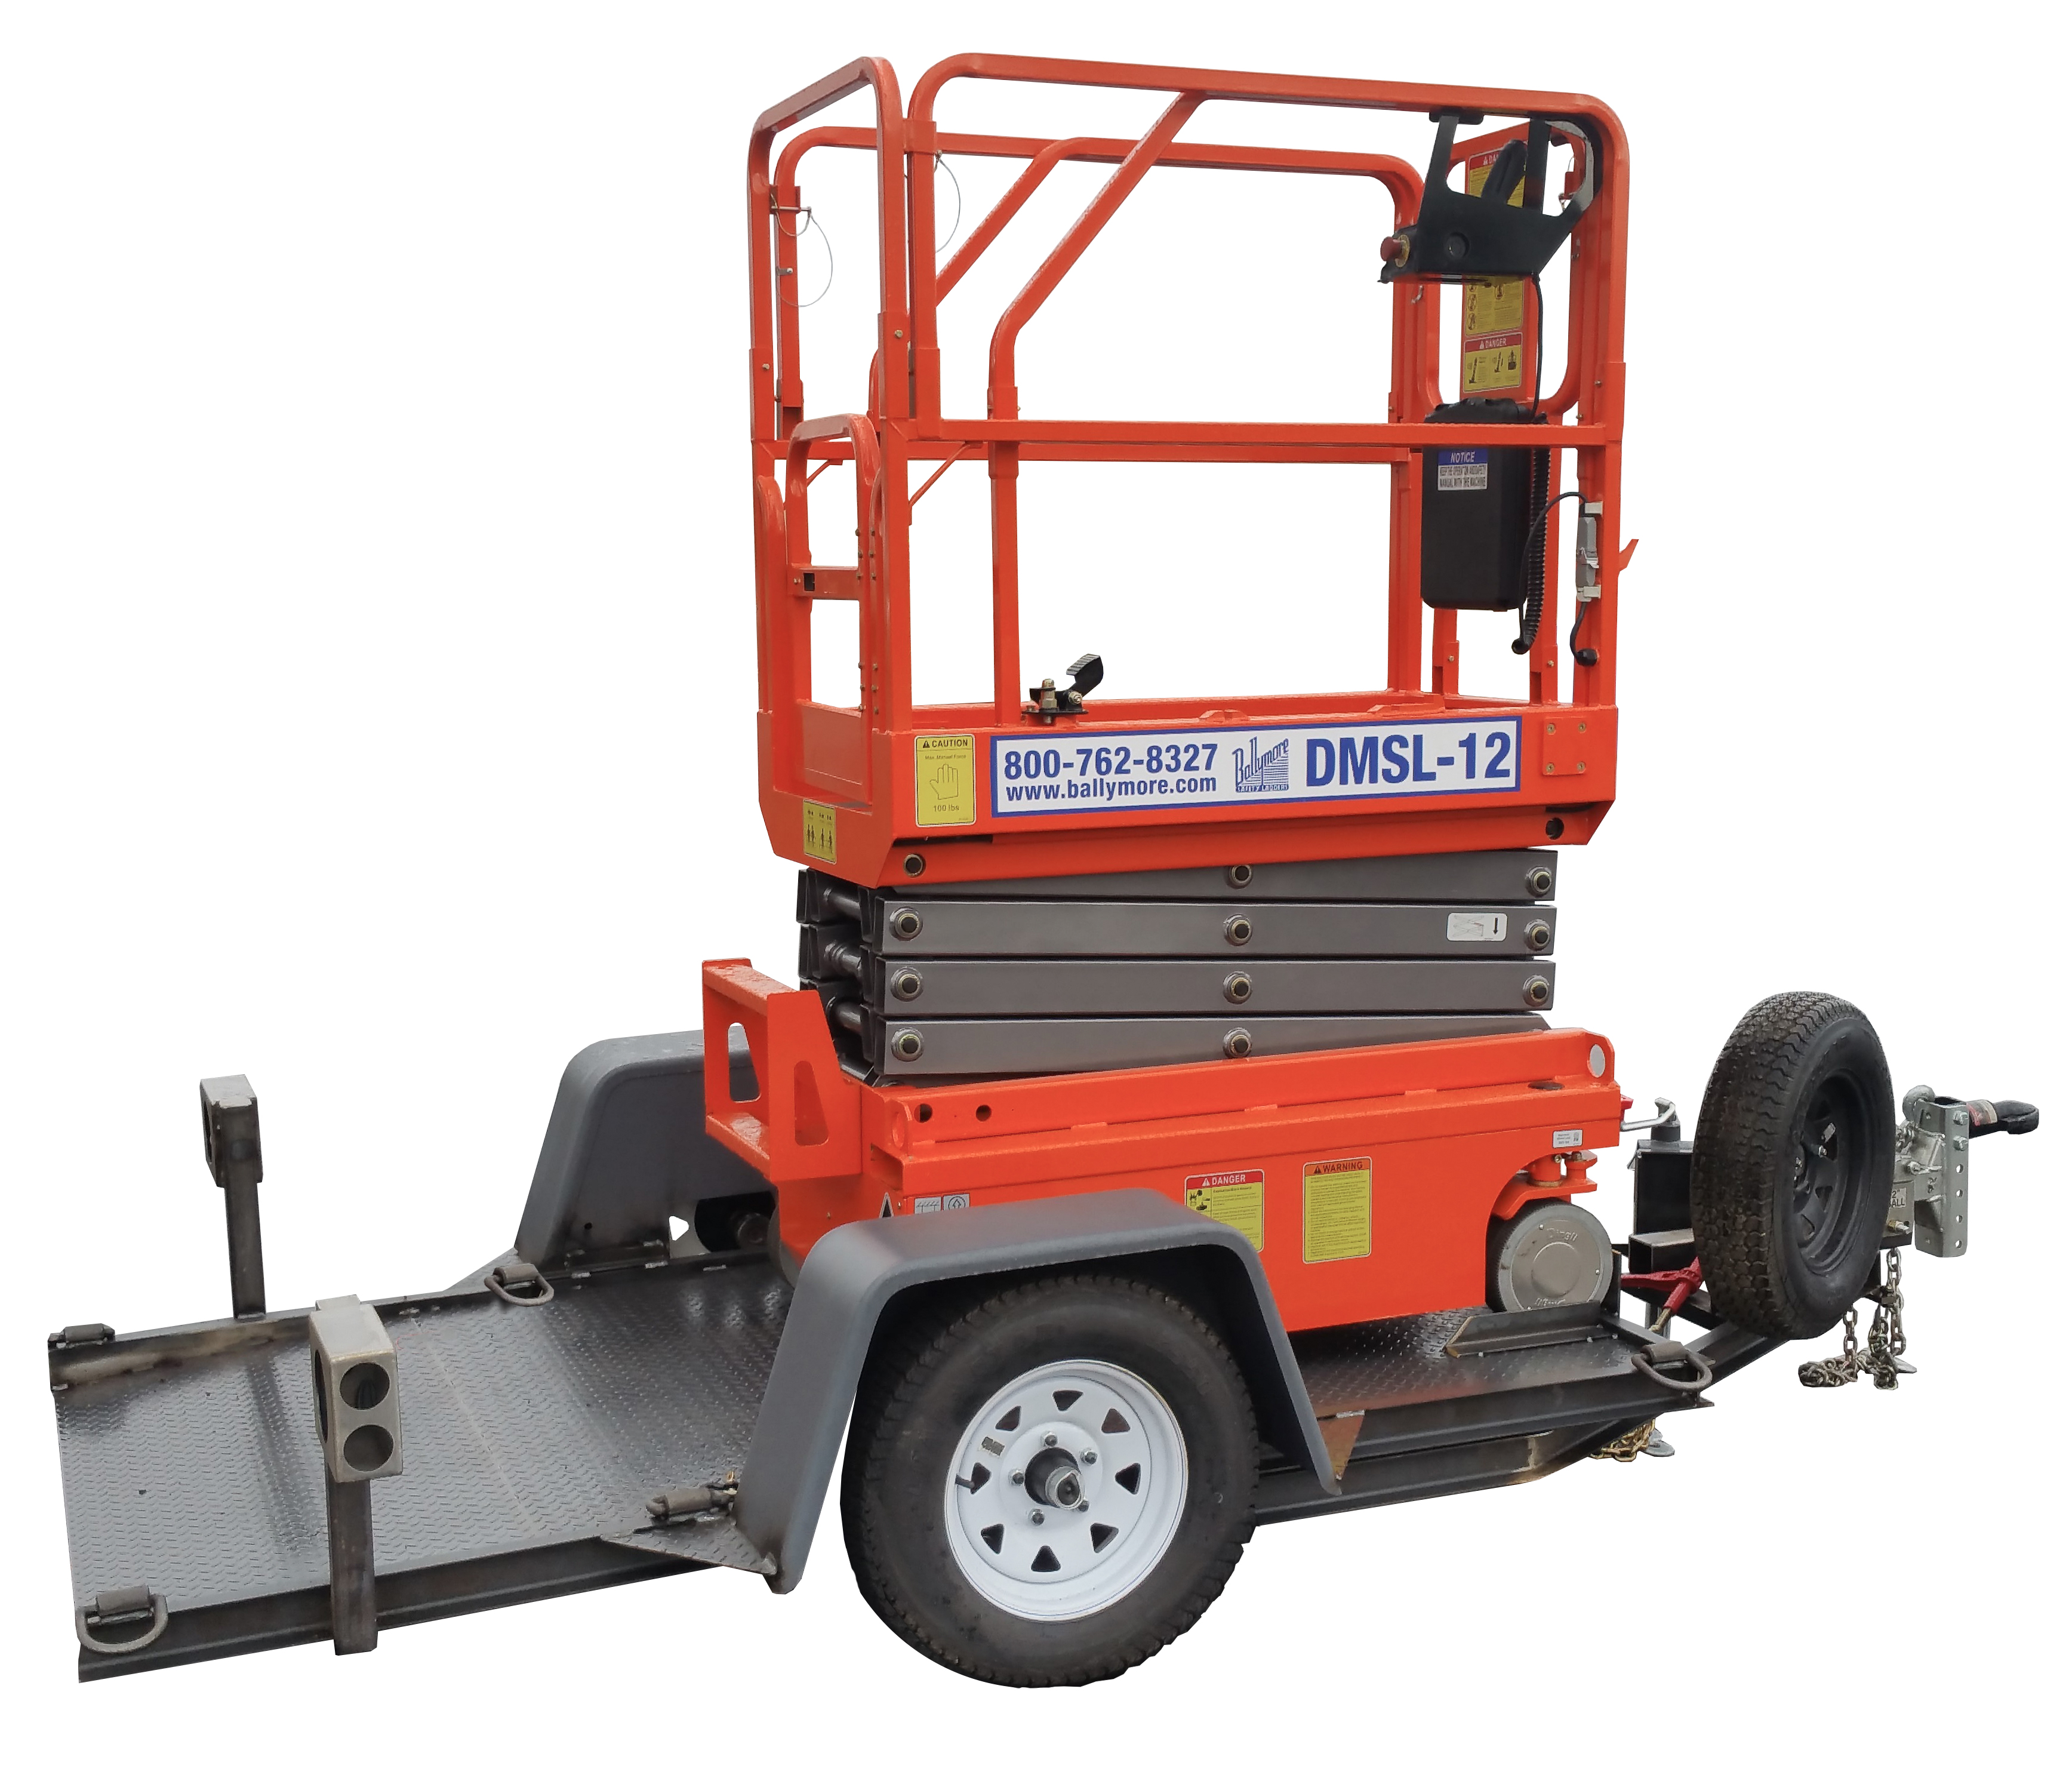 Aerial Lift Rental Compact Power Equipment Rental